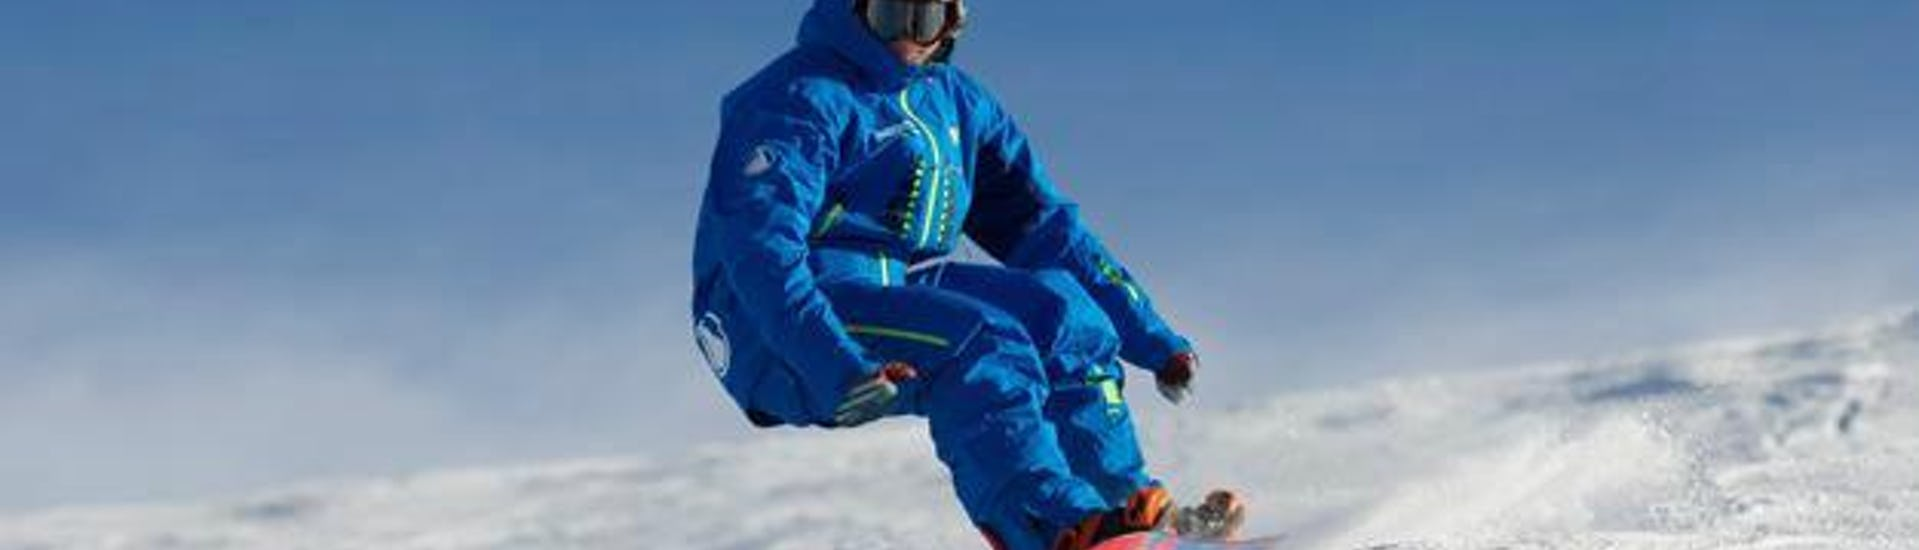 Snowboard Instructor Private - All Levels & Ages - Mornings